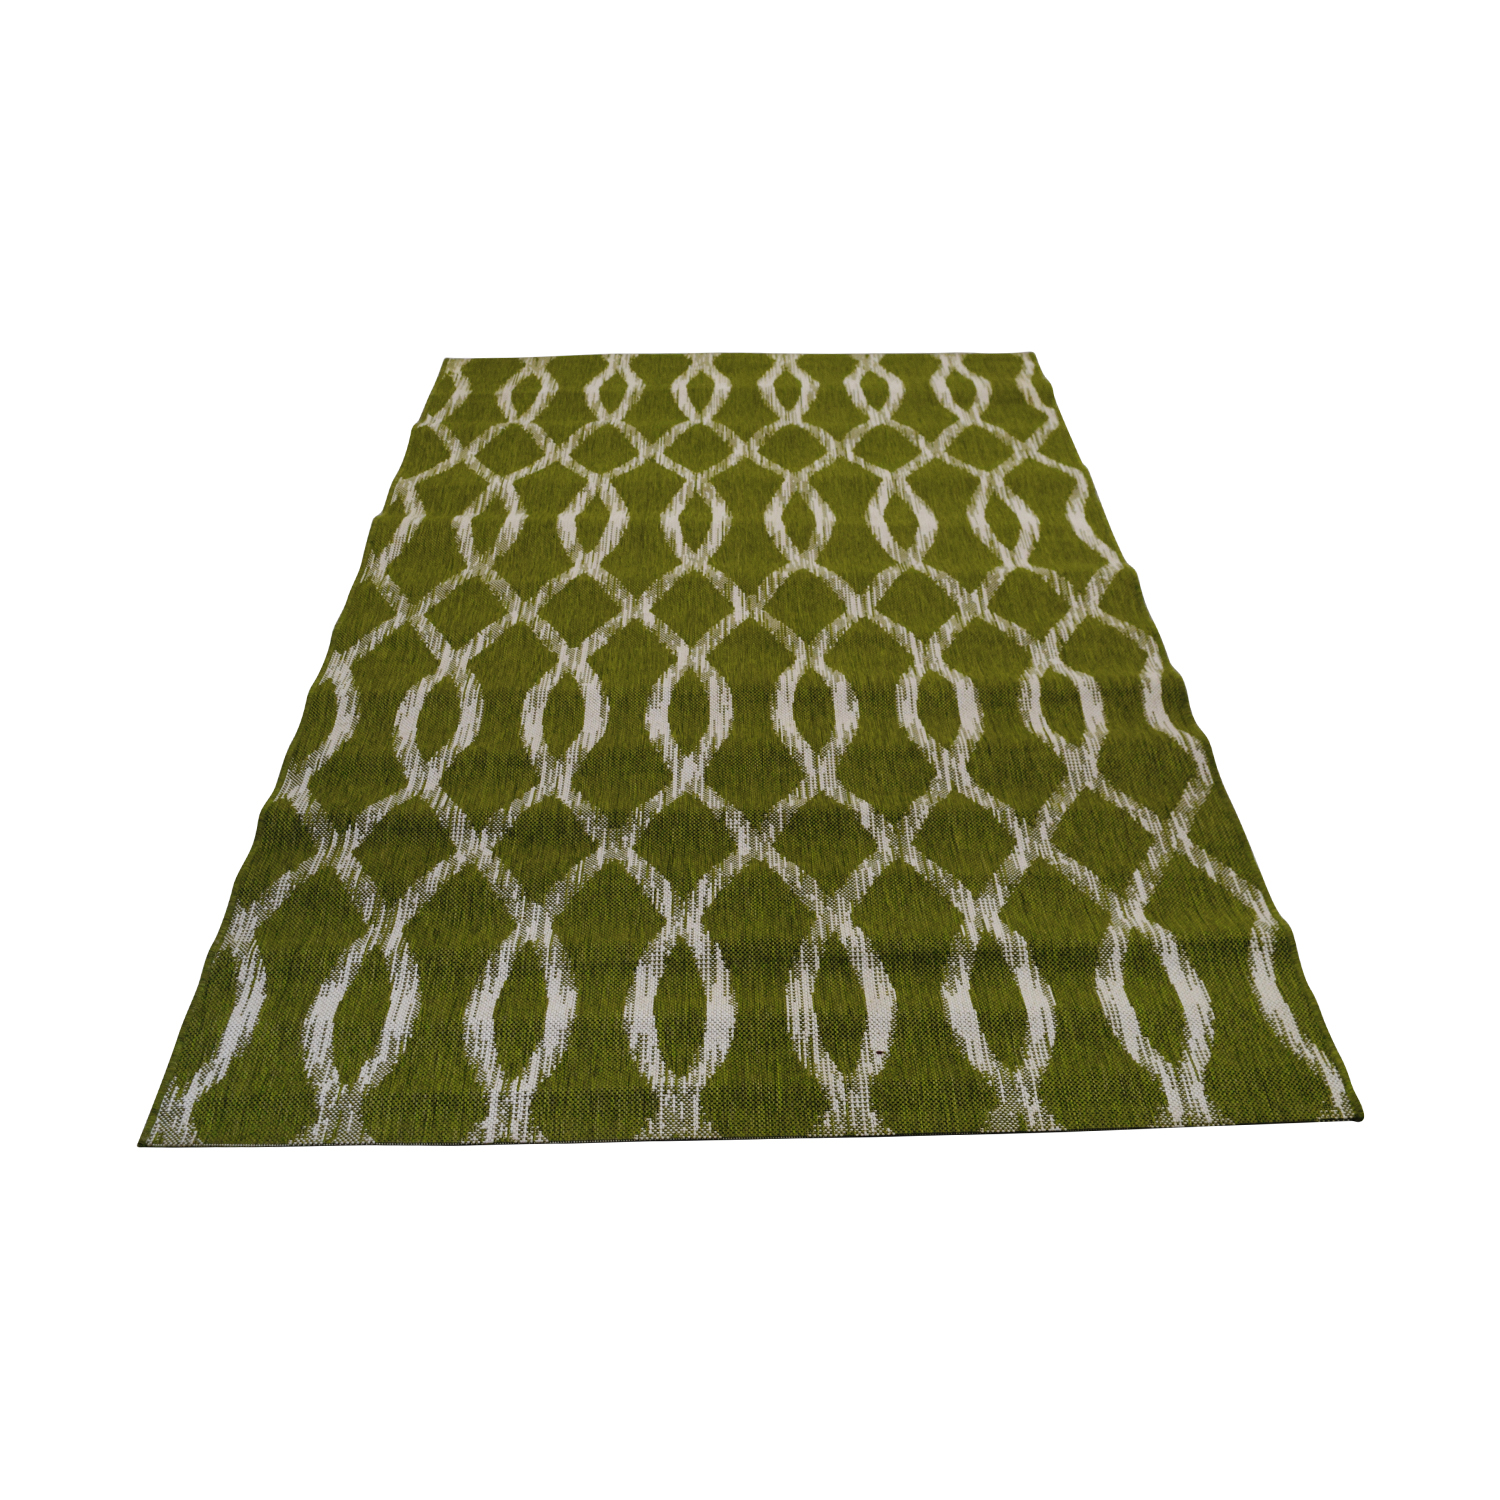 Crate & Barrel Indoor and Outdoor Green and White Rug / Rugs